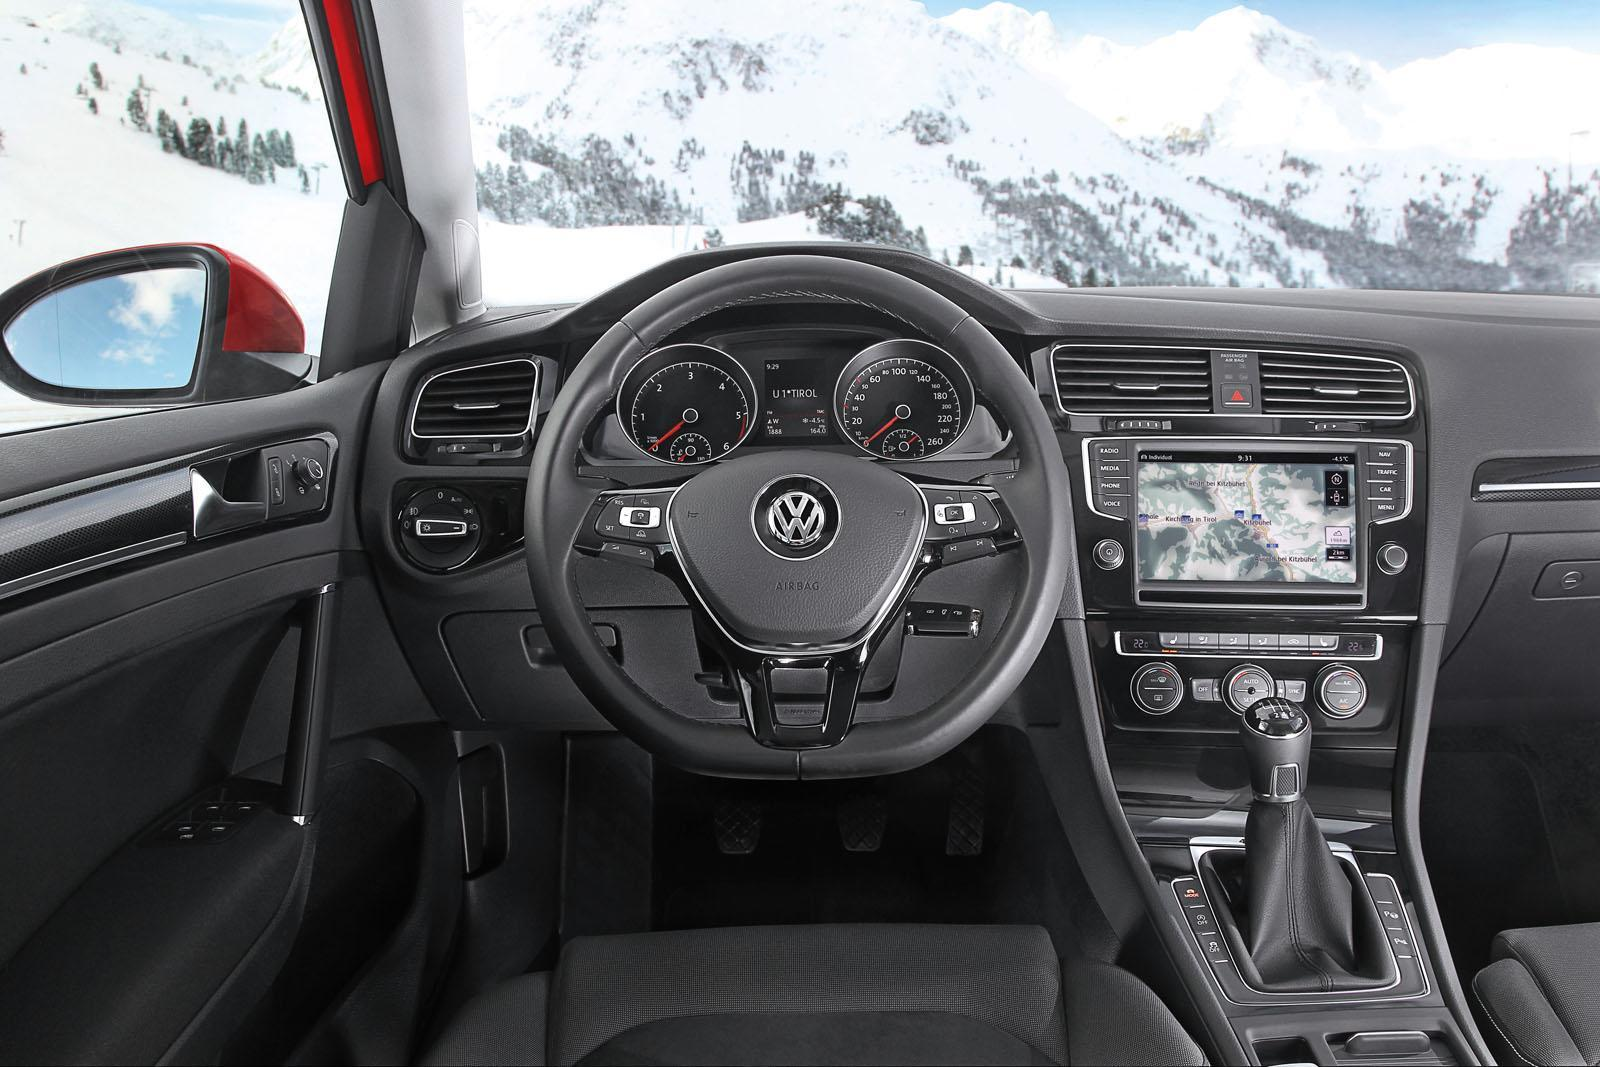 vw golf 7 4motion 2013 la transmission 4x4 en d tails. Black Bedroom Furniture Sets. Home Design Ideas